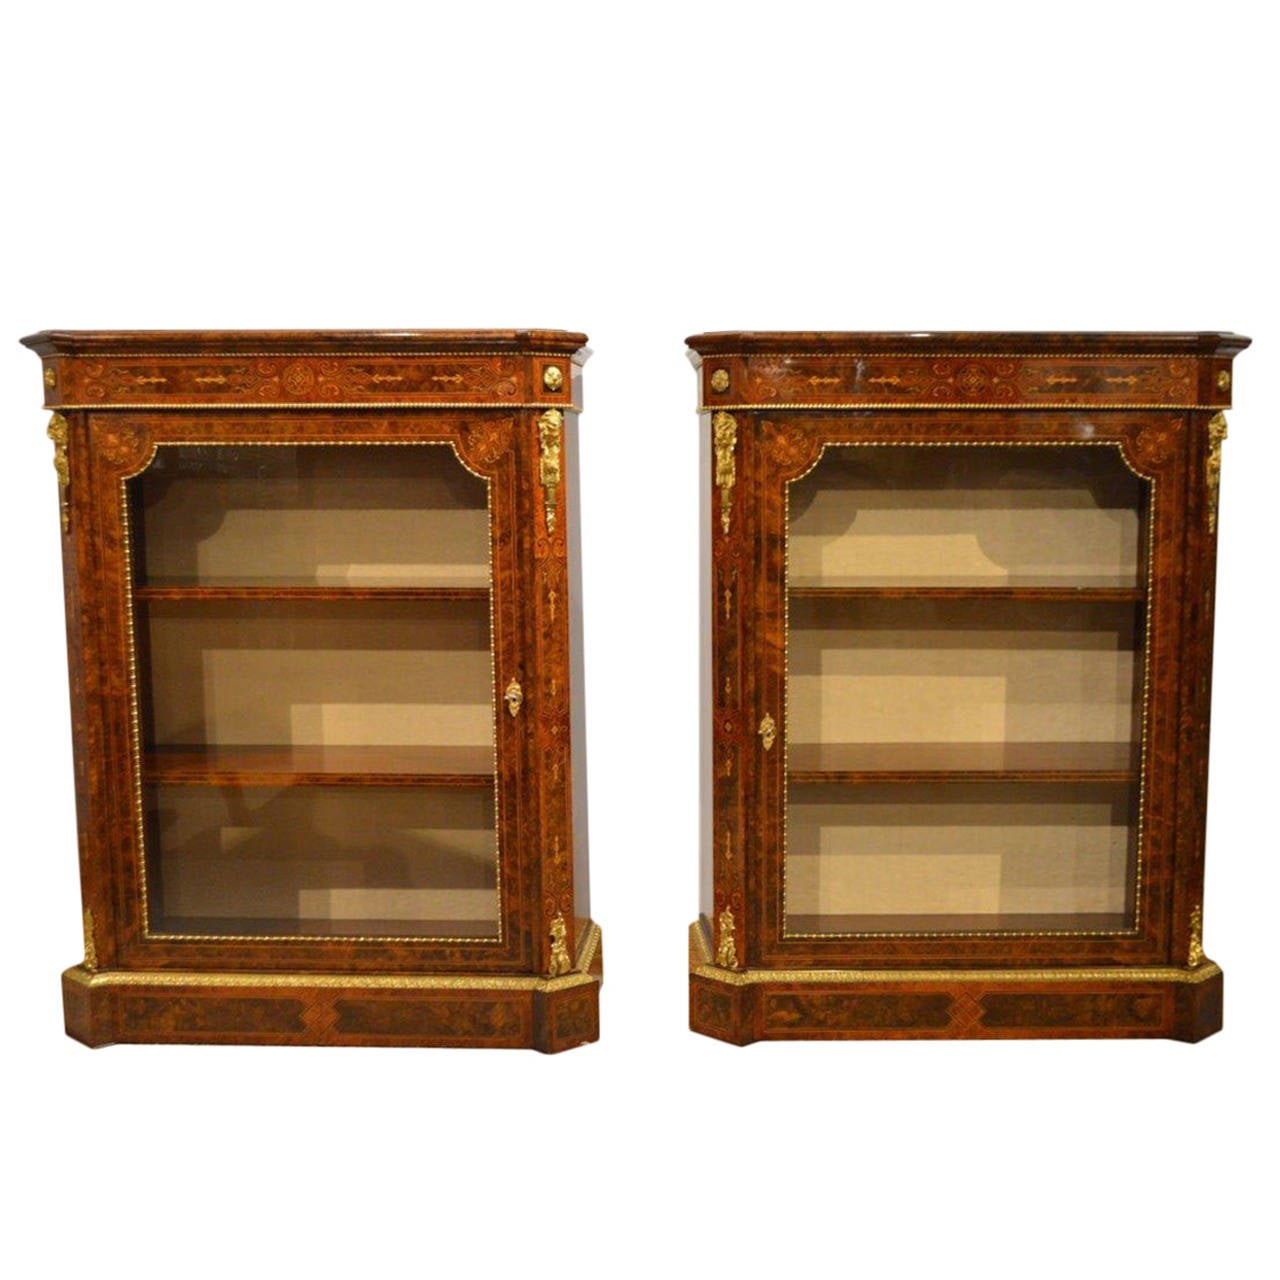 Pair of Burr Walnut and Marquetry Antique Pier Cabinets by